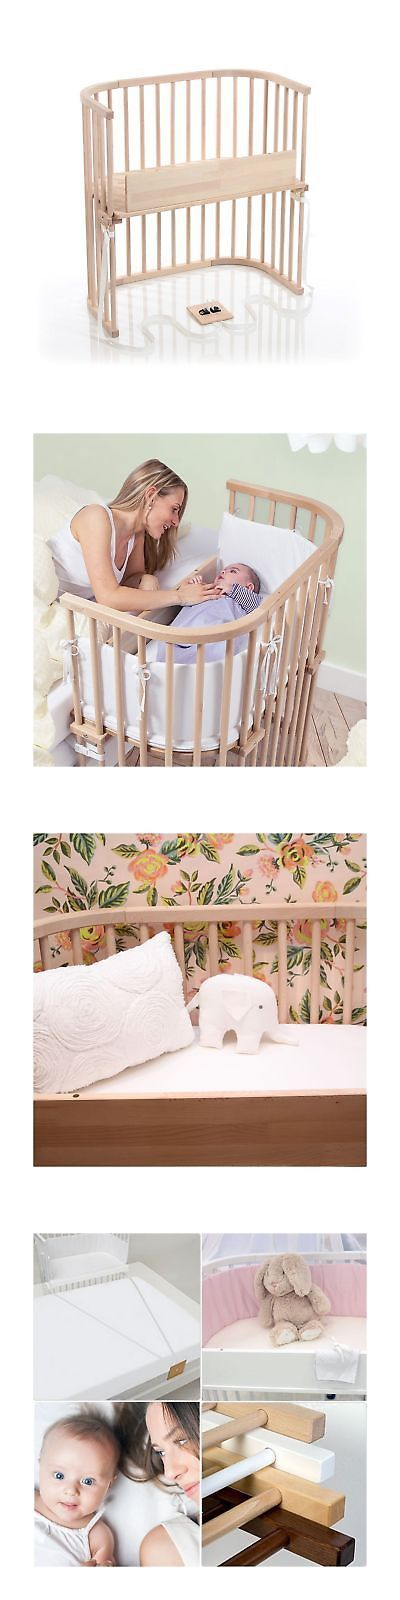 Baby Co-Sleepers 121152: Babybay Bedside Sleeper (Untreated Finish) Untreated Finish -> BUY IT NOW ONLY: $429.77 on eBay!